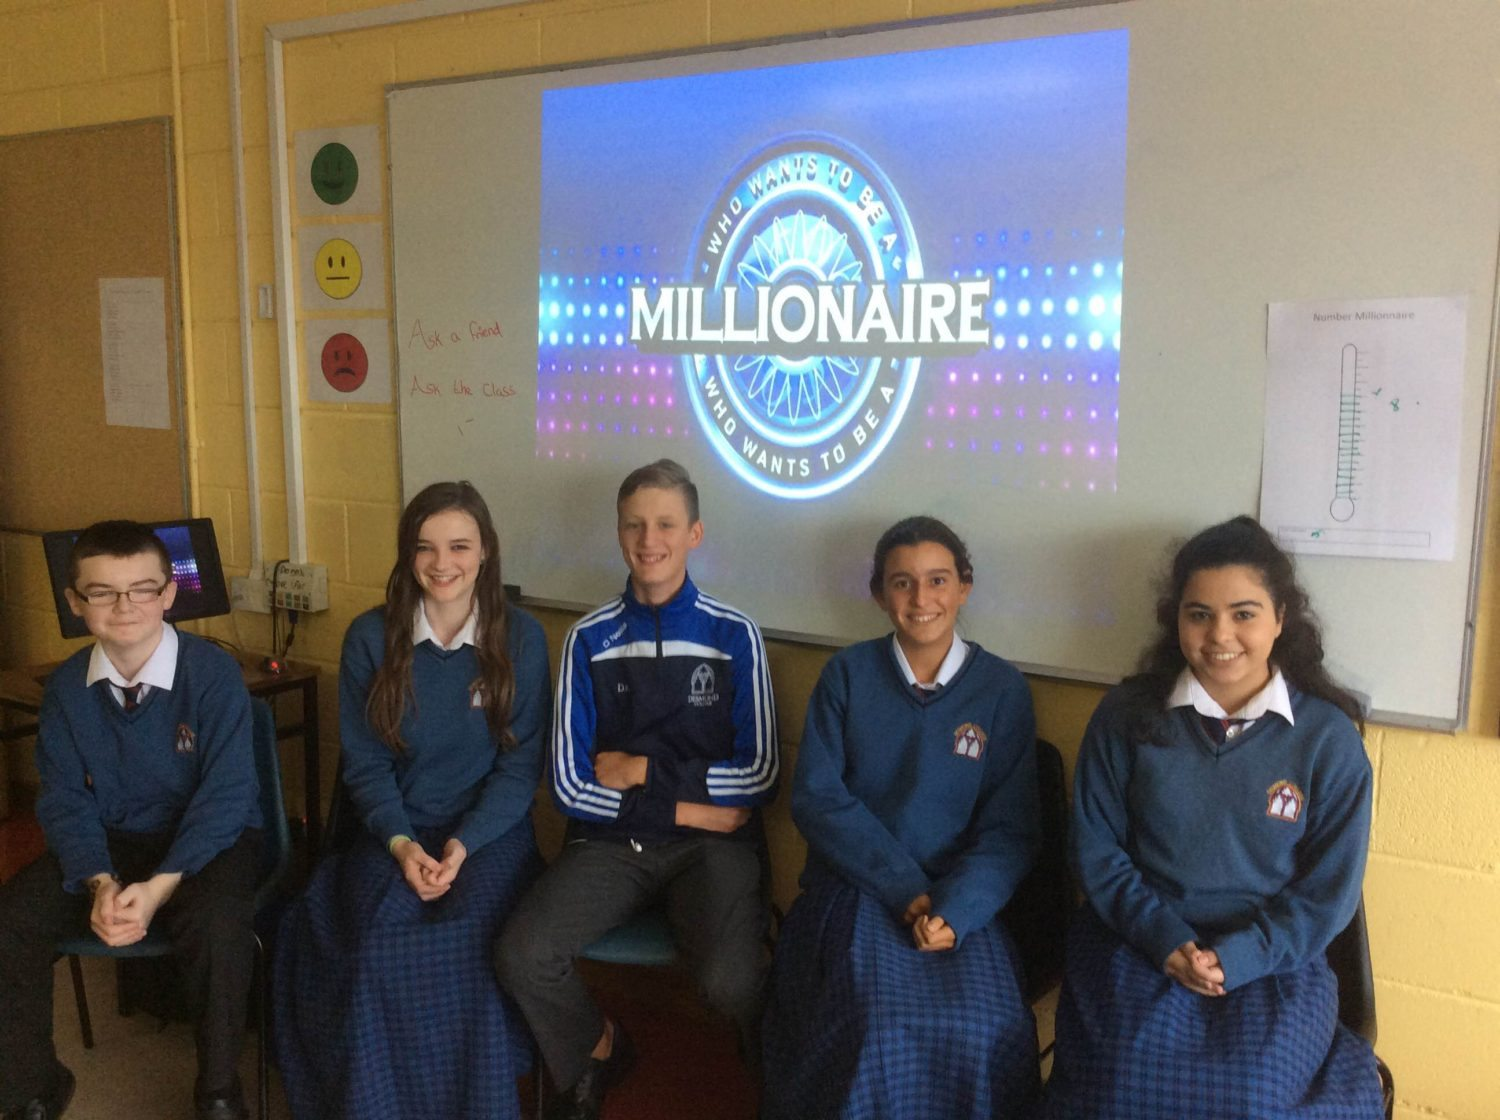 September 2016: Second Year Students play Millionaire to help practice their numeracy skills